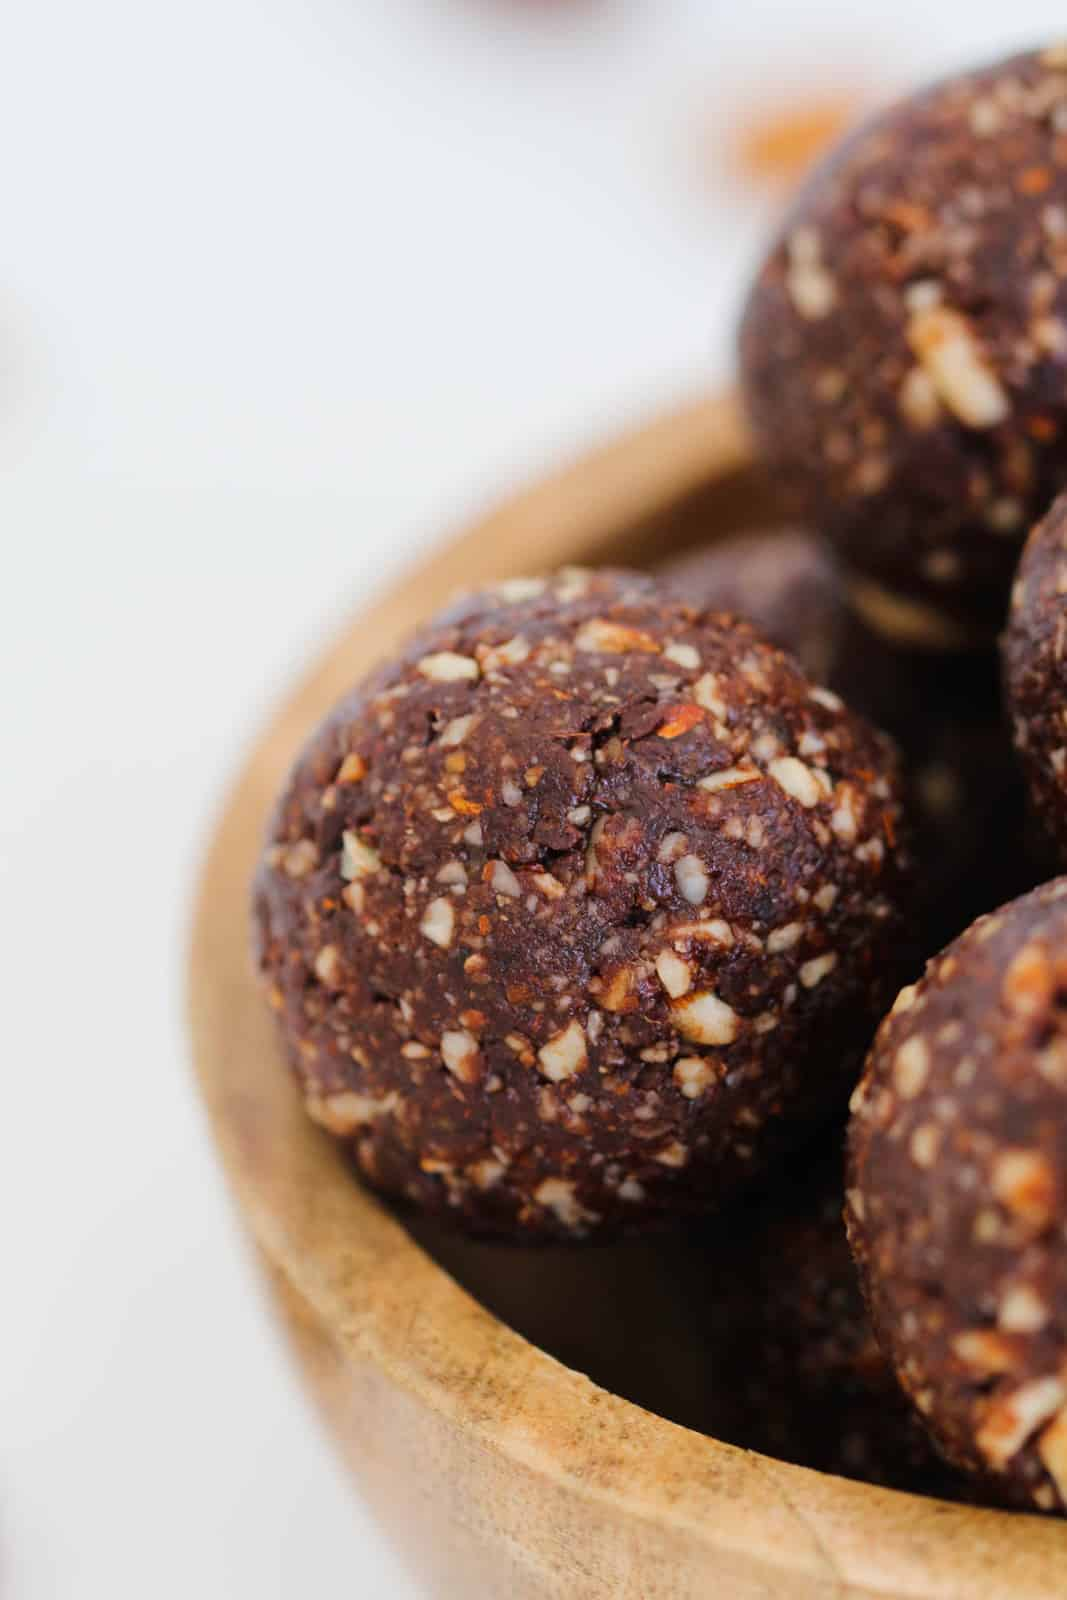 A close up shot of a round date, almond and chocolate protein ball showing nutty texture.